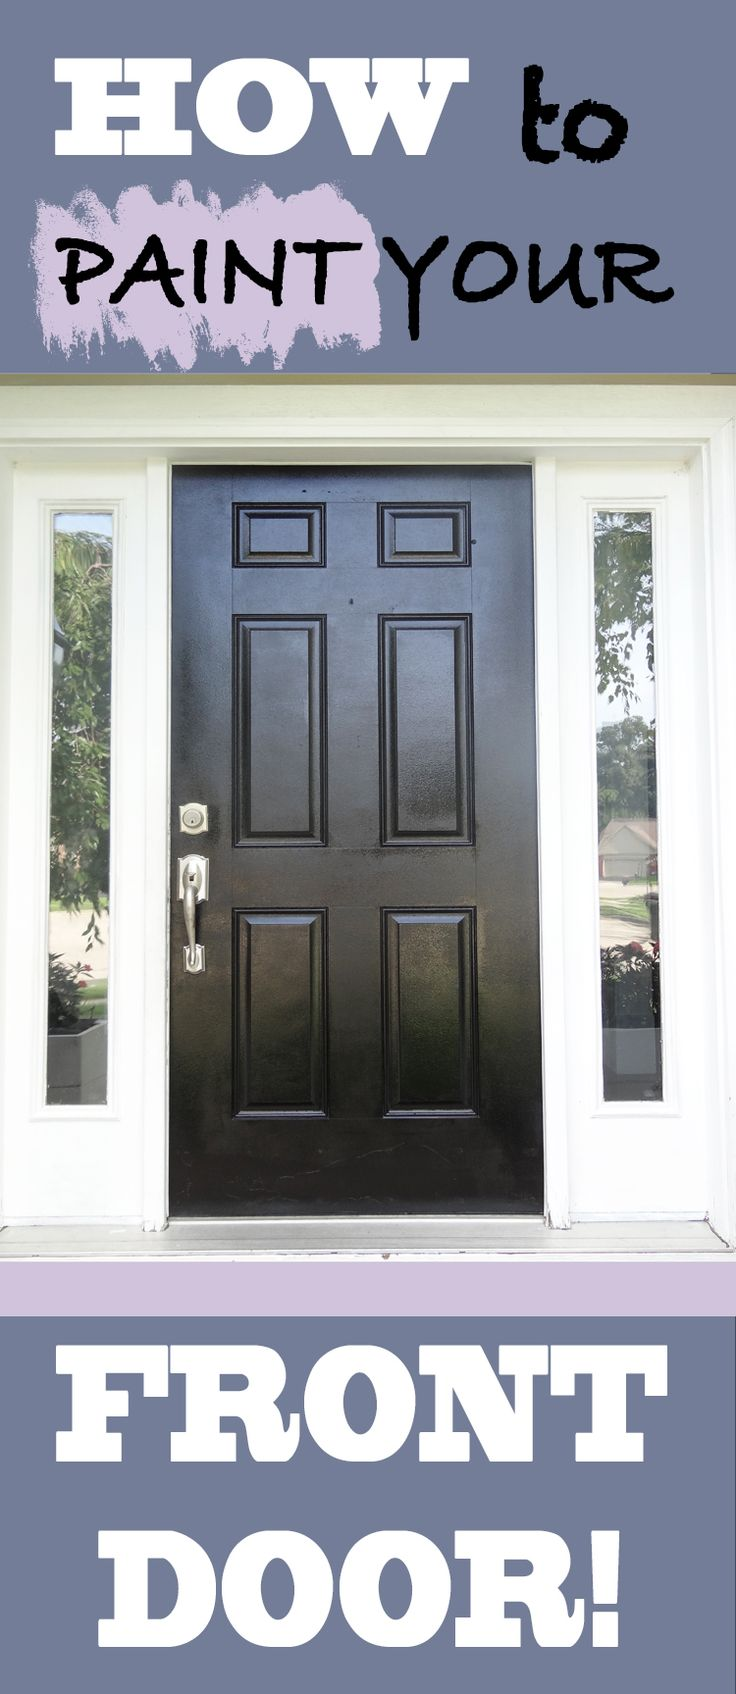 how to paint your front door easy and inexpensive my blog. Black Bedroom Furniture Sets. Home Design Ideas